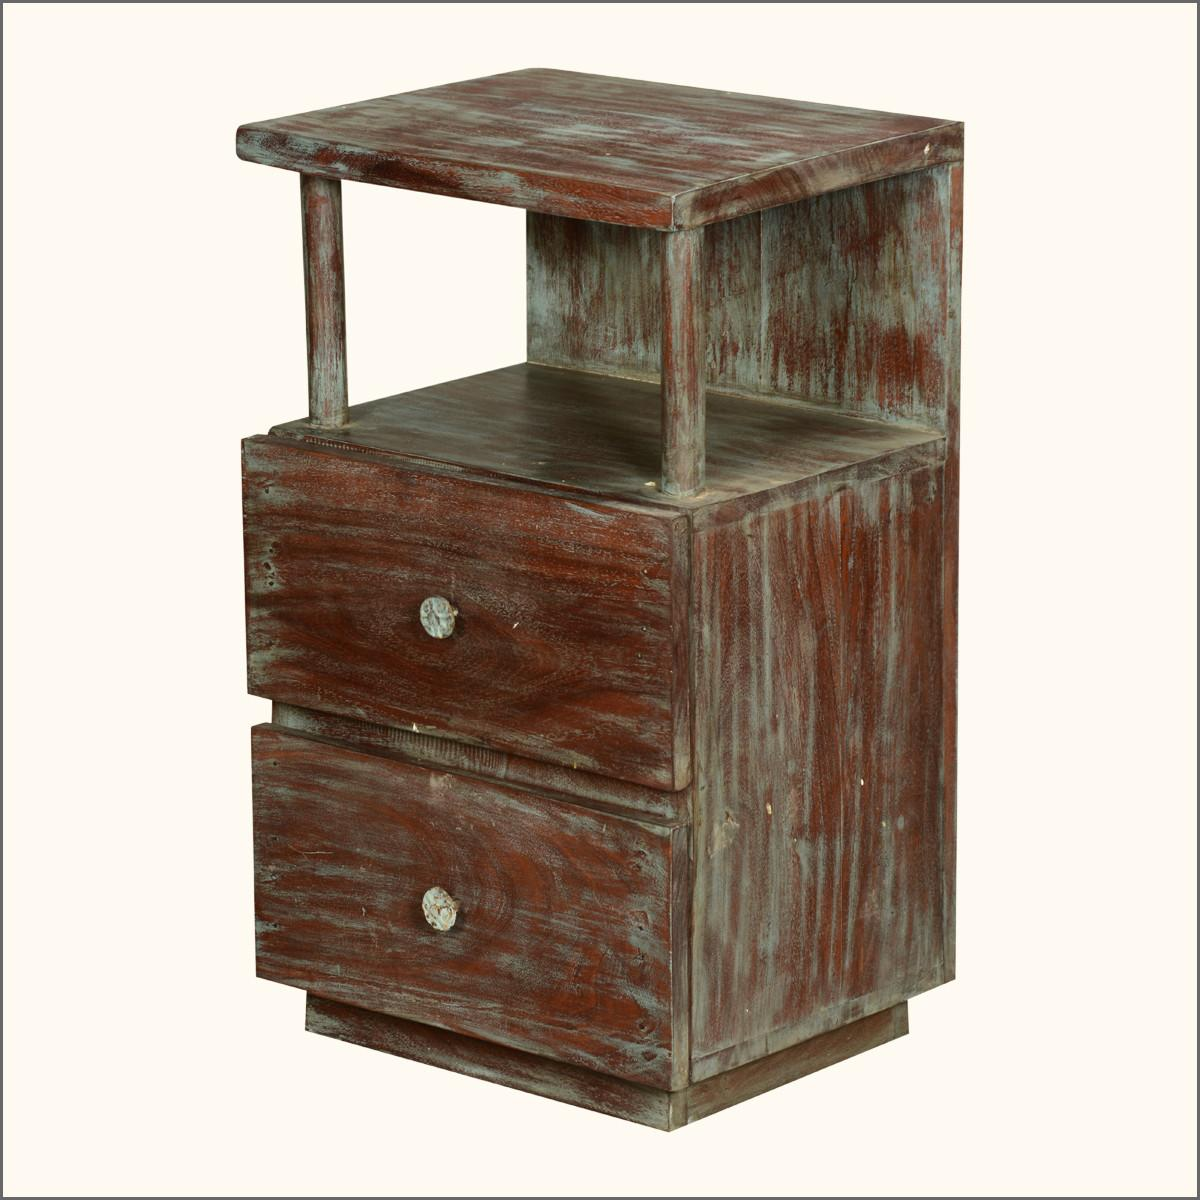 Brown Reclaimed Wood Nightstand Having Two Drawers Under